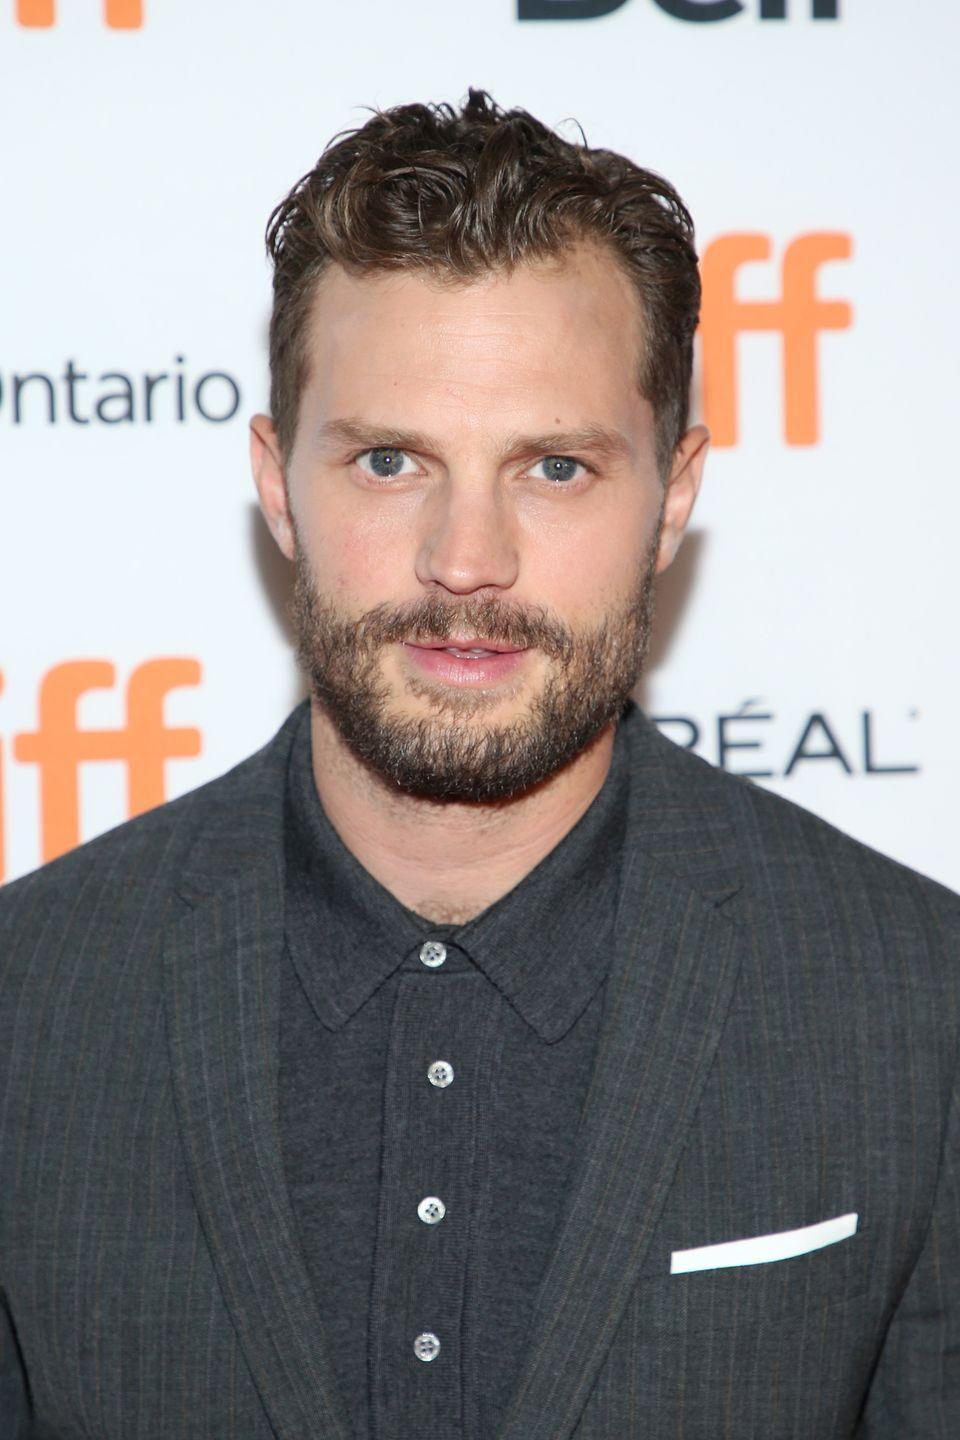 """<p>The controversial trilogy is what made Jamie Dornan a household name, but the actor has spoken about how he found the method of getting inside his character's head difficult. """"I don't think I'll ever play a character who's less like me,"""" he said on Jay Rayner's <a href=""""https://audioboom.com/posts/7246512-jamie-dornan"""" rel=""""nofollow noopener"""" target=""""_blank"""" data-ylk=""""slk:podcast"""" class=""""link rapid-noclick-resp"""">podcast </a><em><a href=""""https://podcasts.apple.com/gb/podcast/jamie-dornan/id1455111316?i=1000436855813"""" rel=""""nofollow noopener"""" target=""""_blank"""" data-ylk=""""slk:Out to Lunch"""" class=""""link rapid-noclick-resp"""">Out to Lunch</a>. </em>If you wanted his wife's opinion, she wouldn't have one. She <a href=""""https://www.thesun.co.uk/tvandshowbiz/5472435/jamie-dornan-says-his-wife-hasnt-watched-him-in-fifty-shades-films-and-its-got-nothing-to-do-with-seeing-him-having-sex-with-someone-else/"""" rel=""""nofollow noopener"""" target=""""_blank"""" data-ylk=""""slk:still hasn't seen"""" class=""""link rapid-noclick-resp"""">still hasn't seen</a> the films. </p>"""